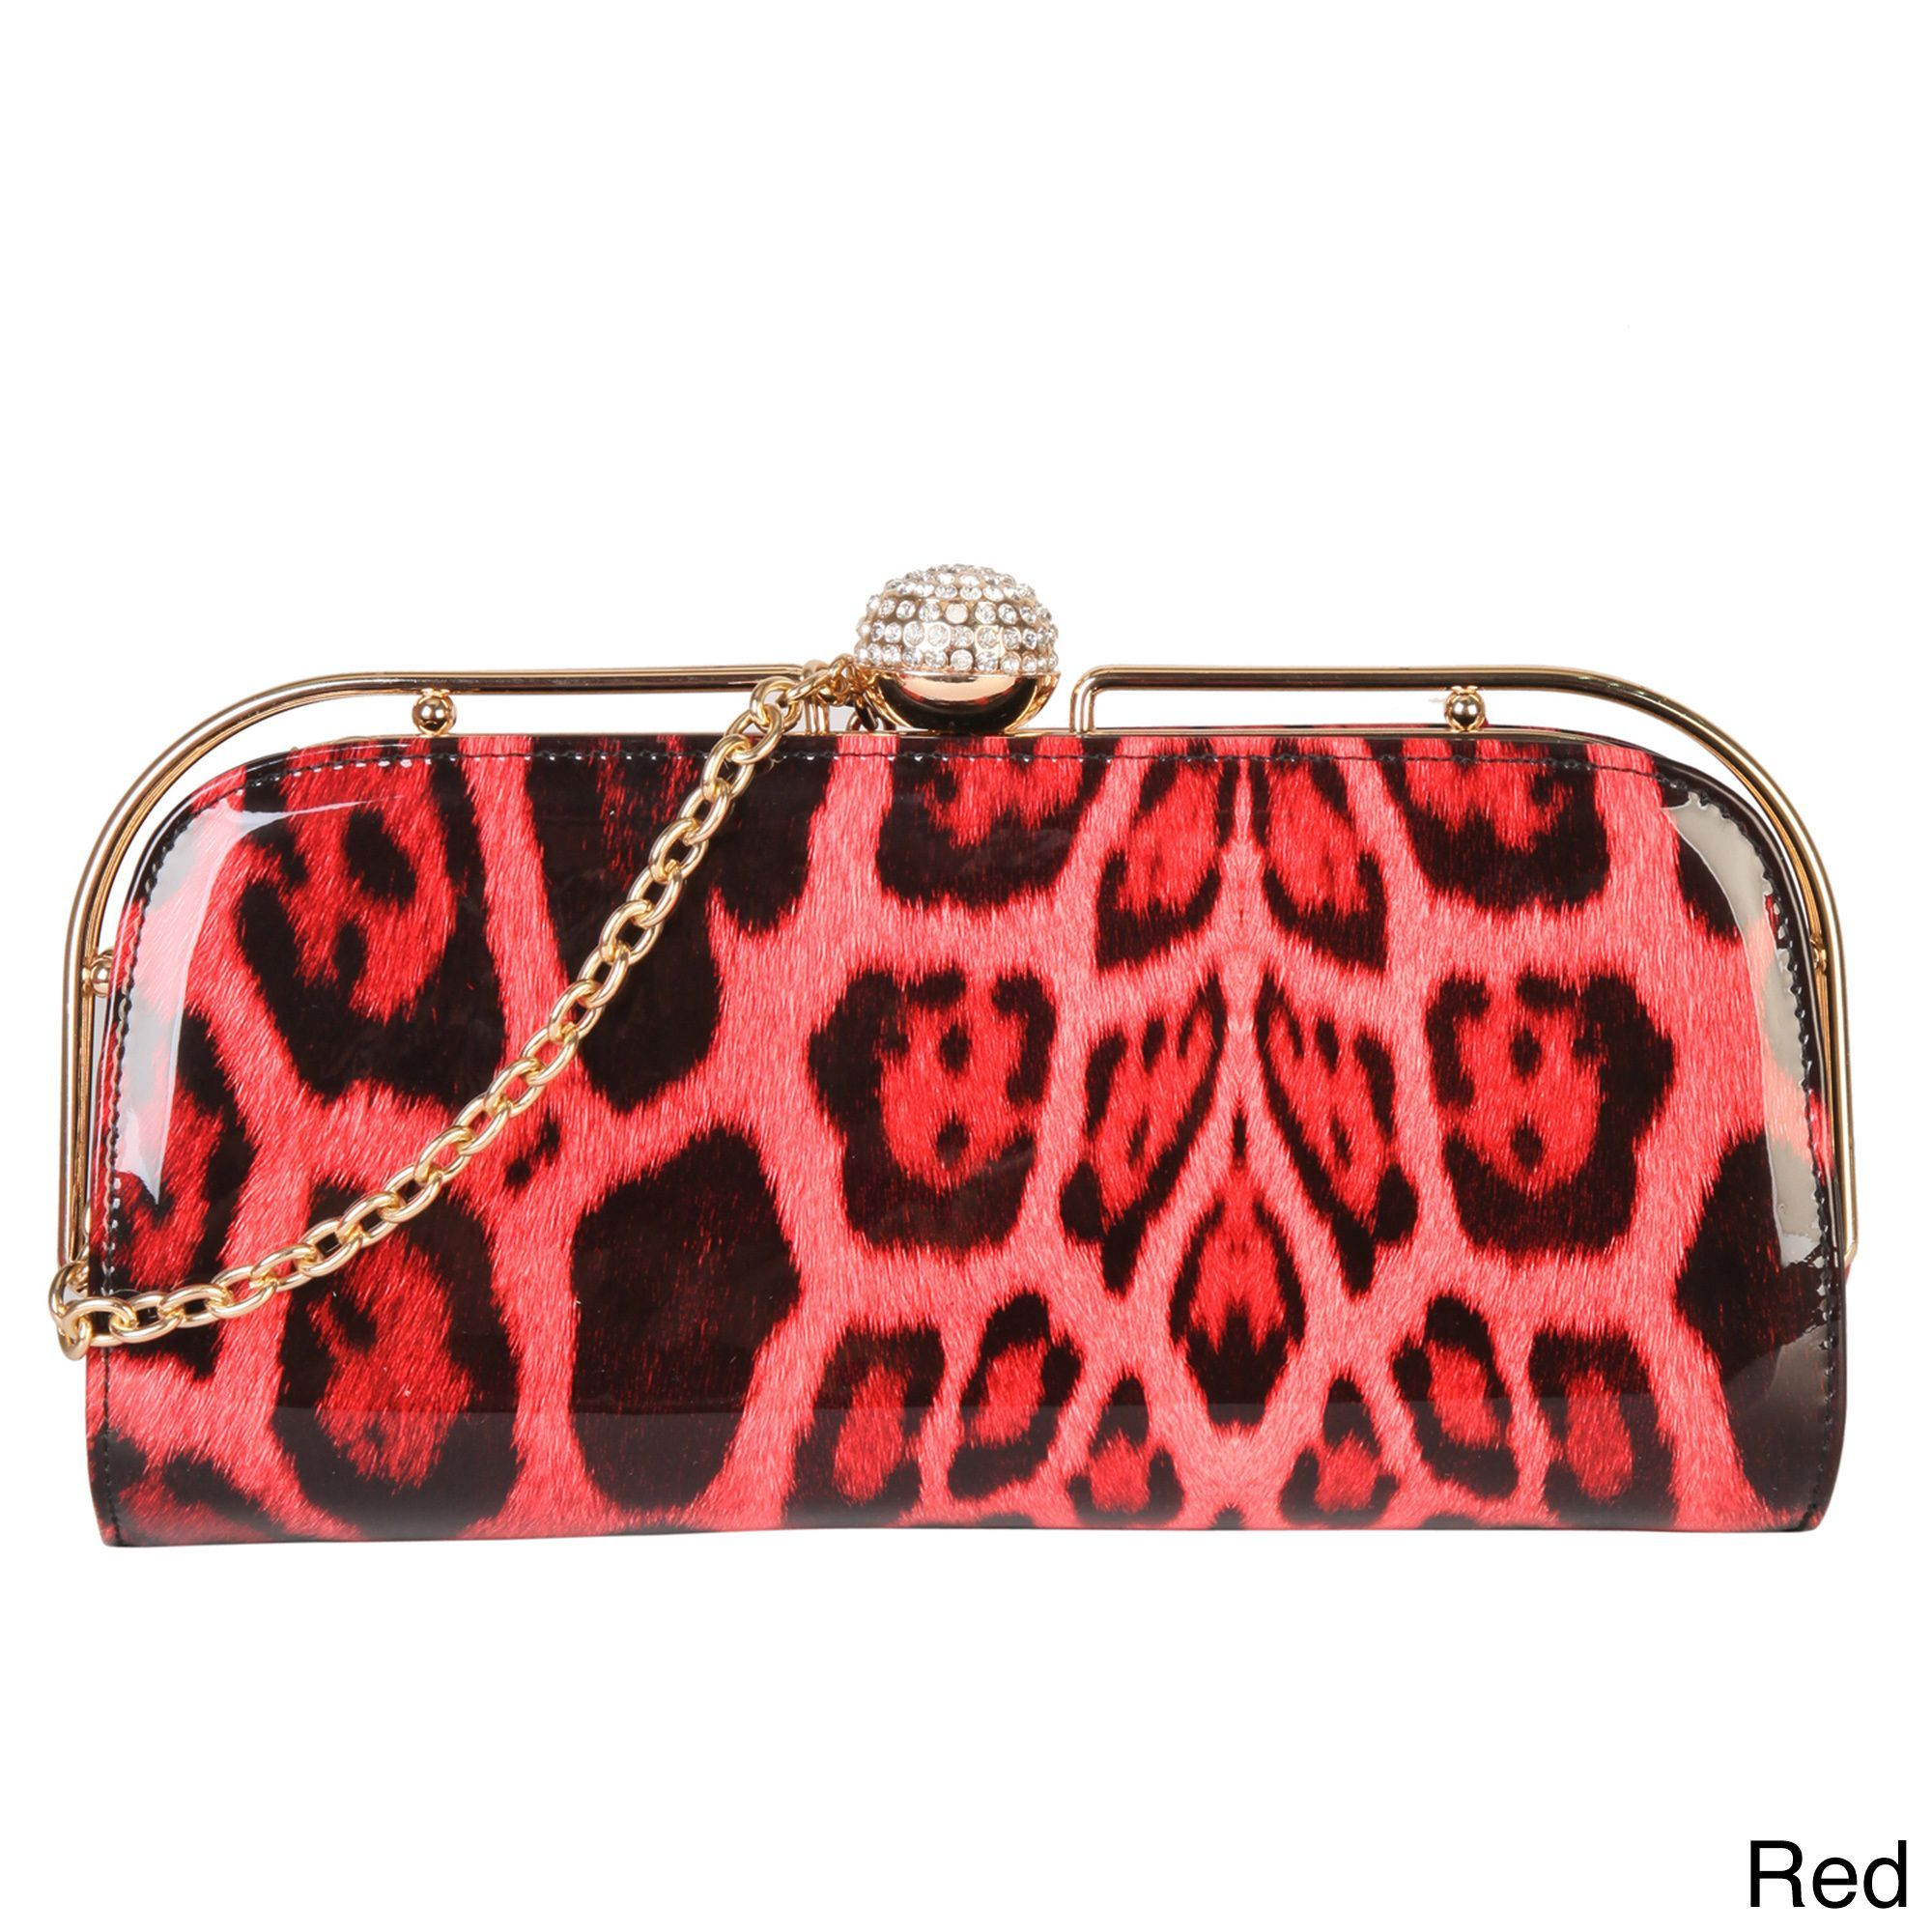 Rimen and Co. Luxury Patent Evening Clutch With Removable Metal Chain Strap